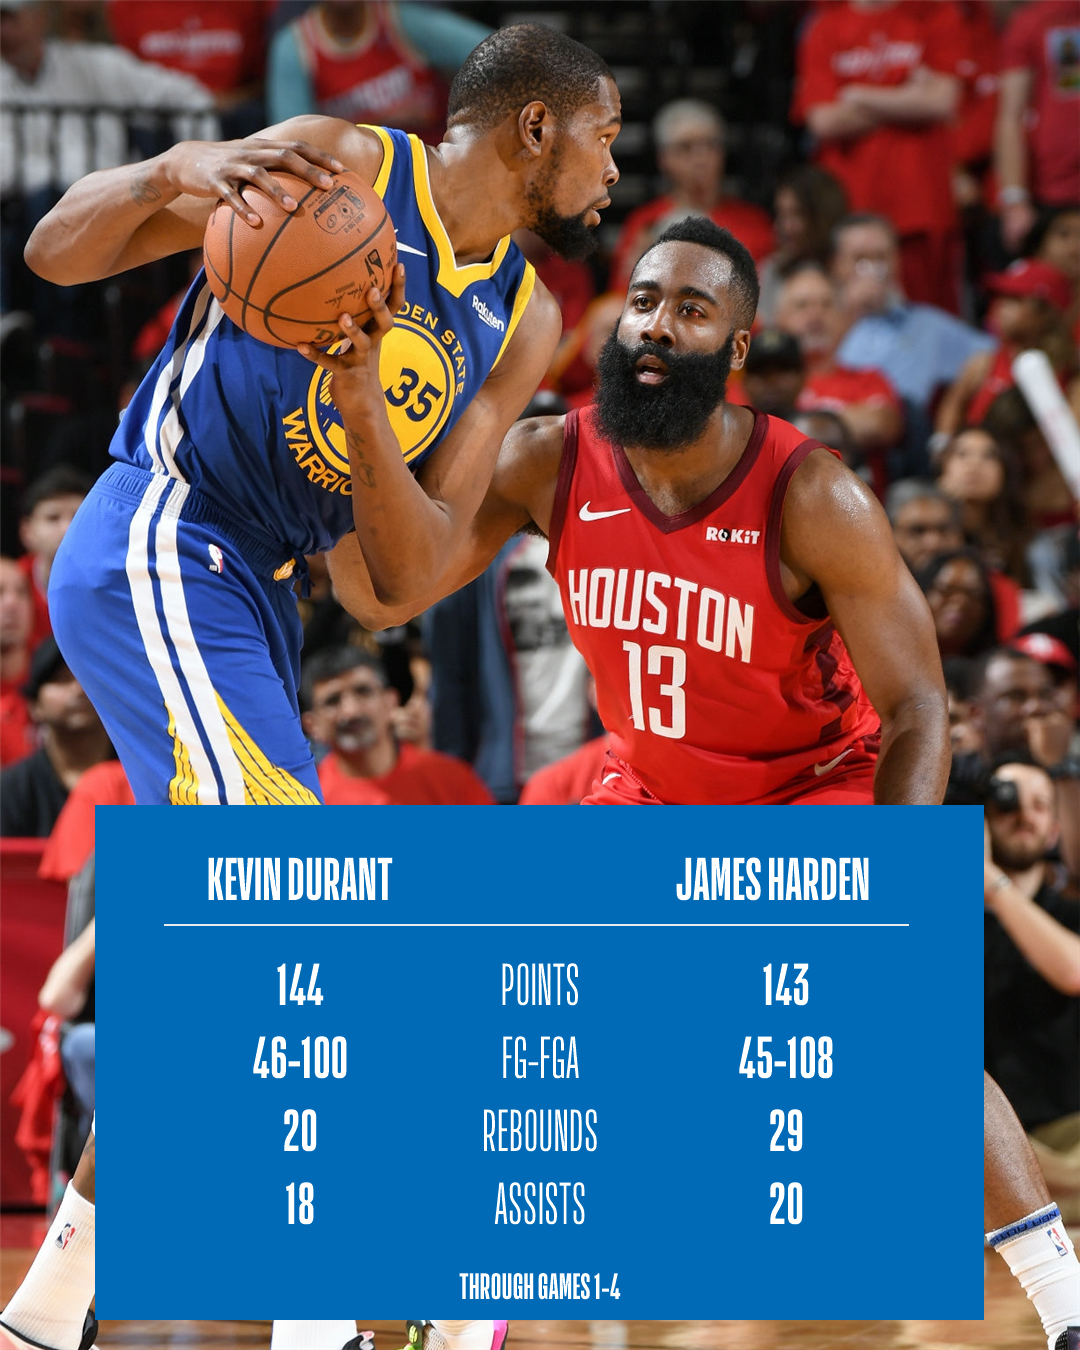 Warriors Vs Rockets Live Stream Game 6: NBA Playoffs 2019: Four Things To Watch In Wednesday's